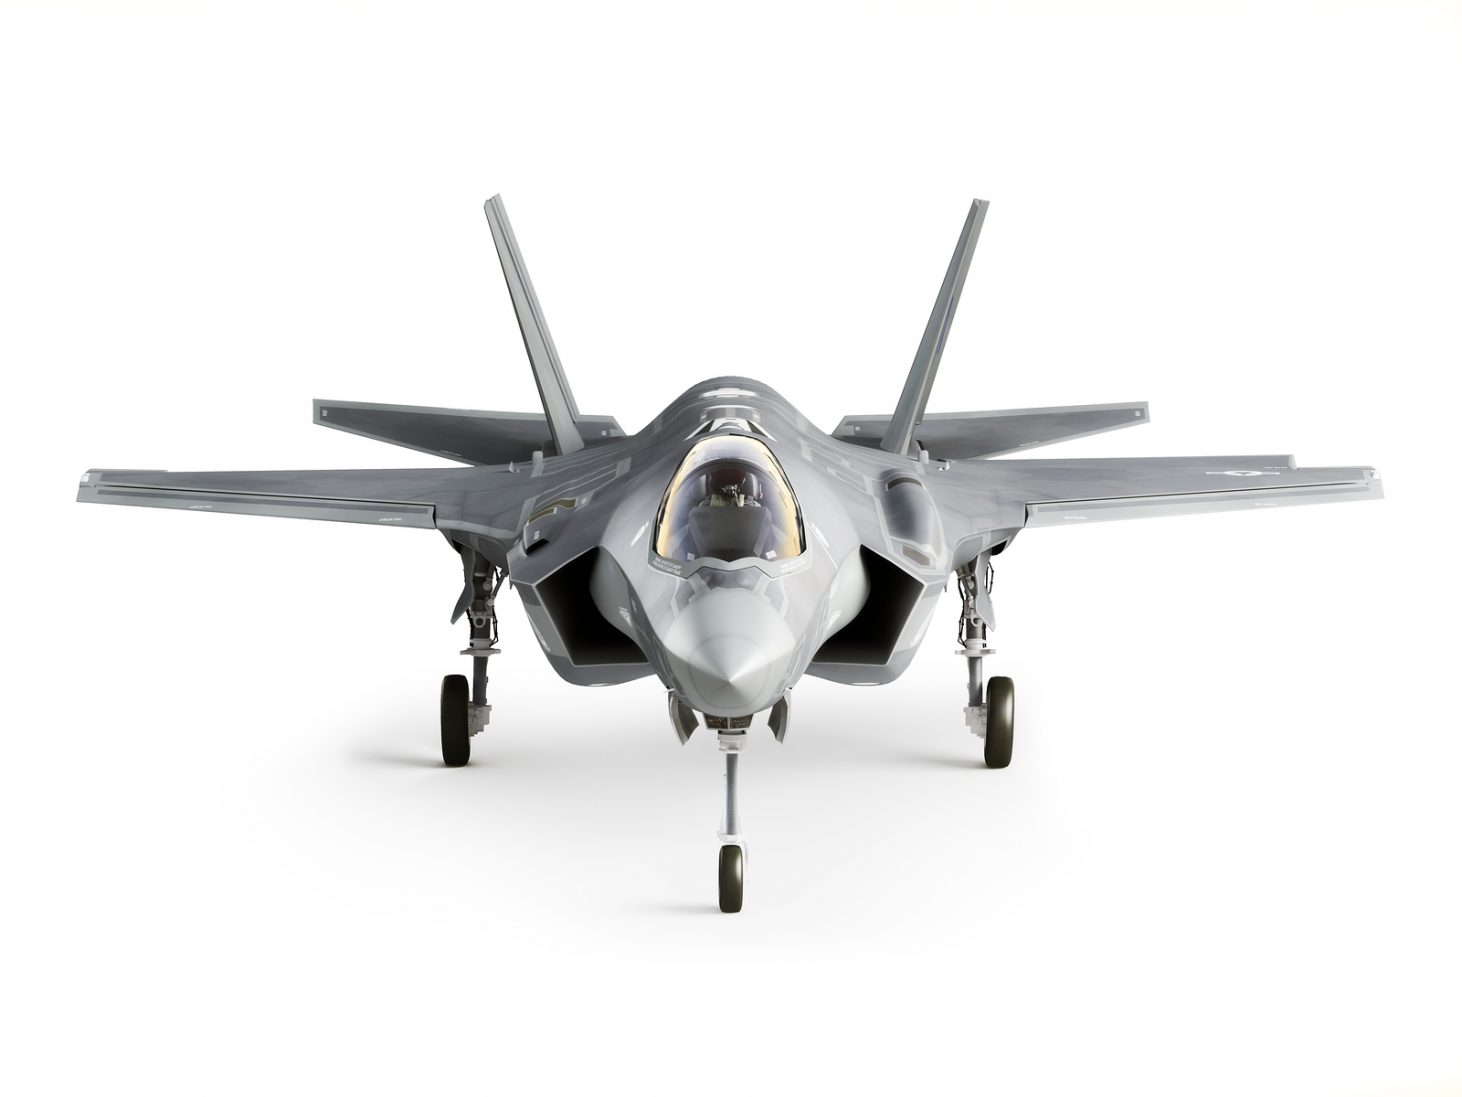 10 reasons to tank the F-35 jet sale to Turkey - JISS